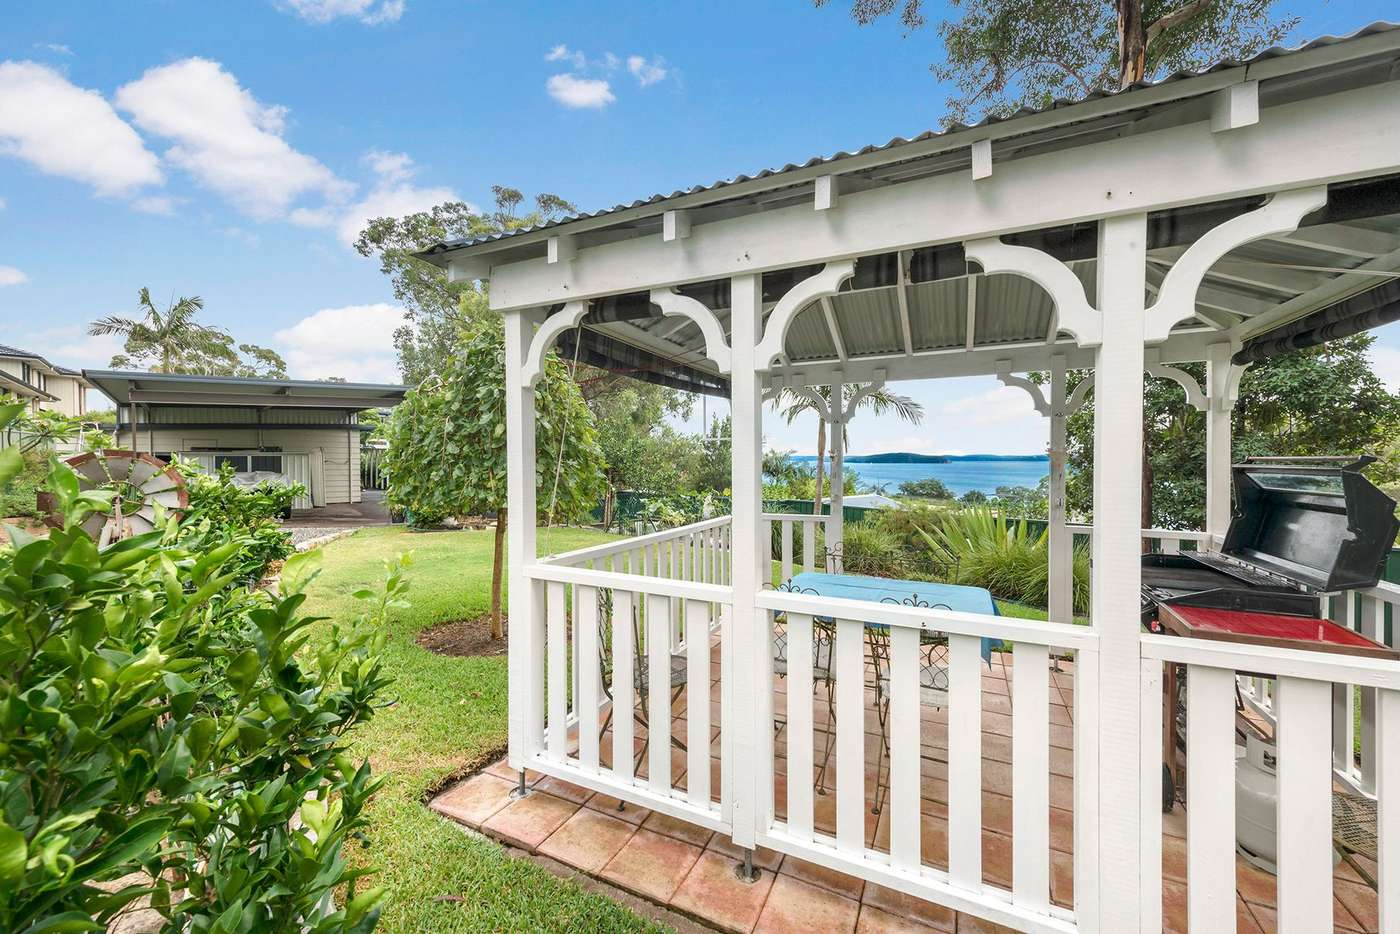 Main view of Homely house listing, 13 Government Road, Nords Wharf NSW 2281